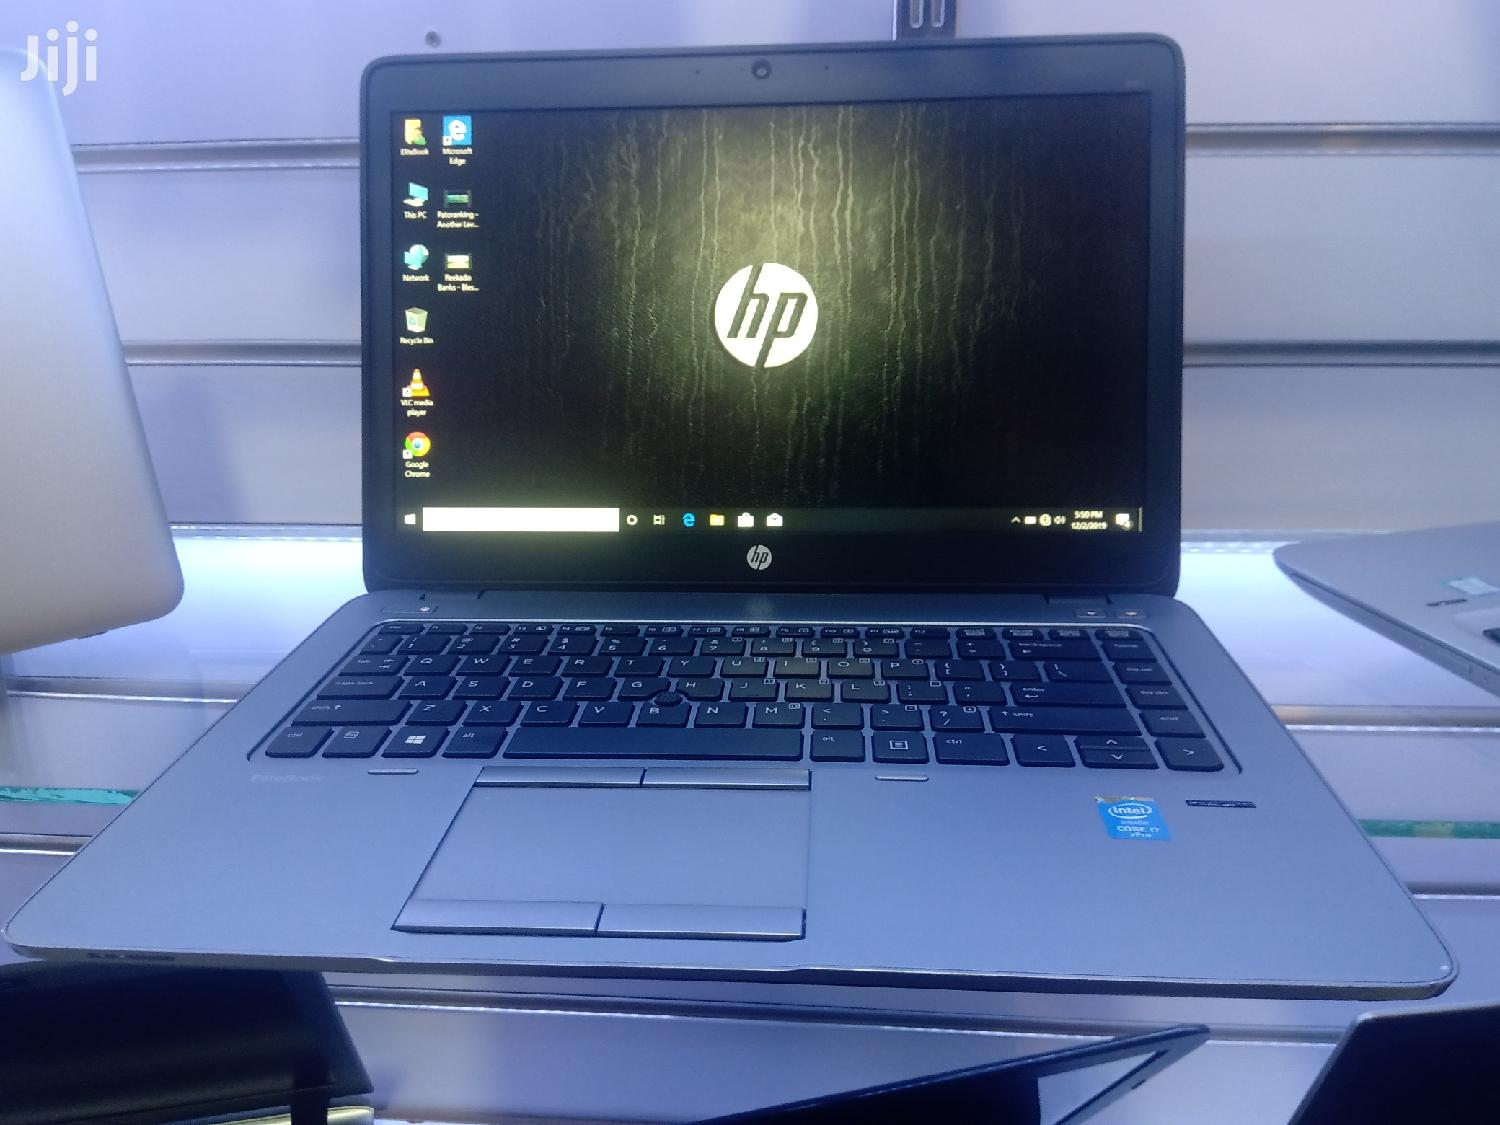 Archive: New Laptop HP EliteBook 840 G2 4GB Intel Core i7 HDD 500GB